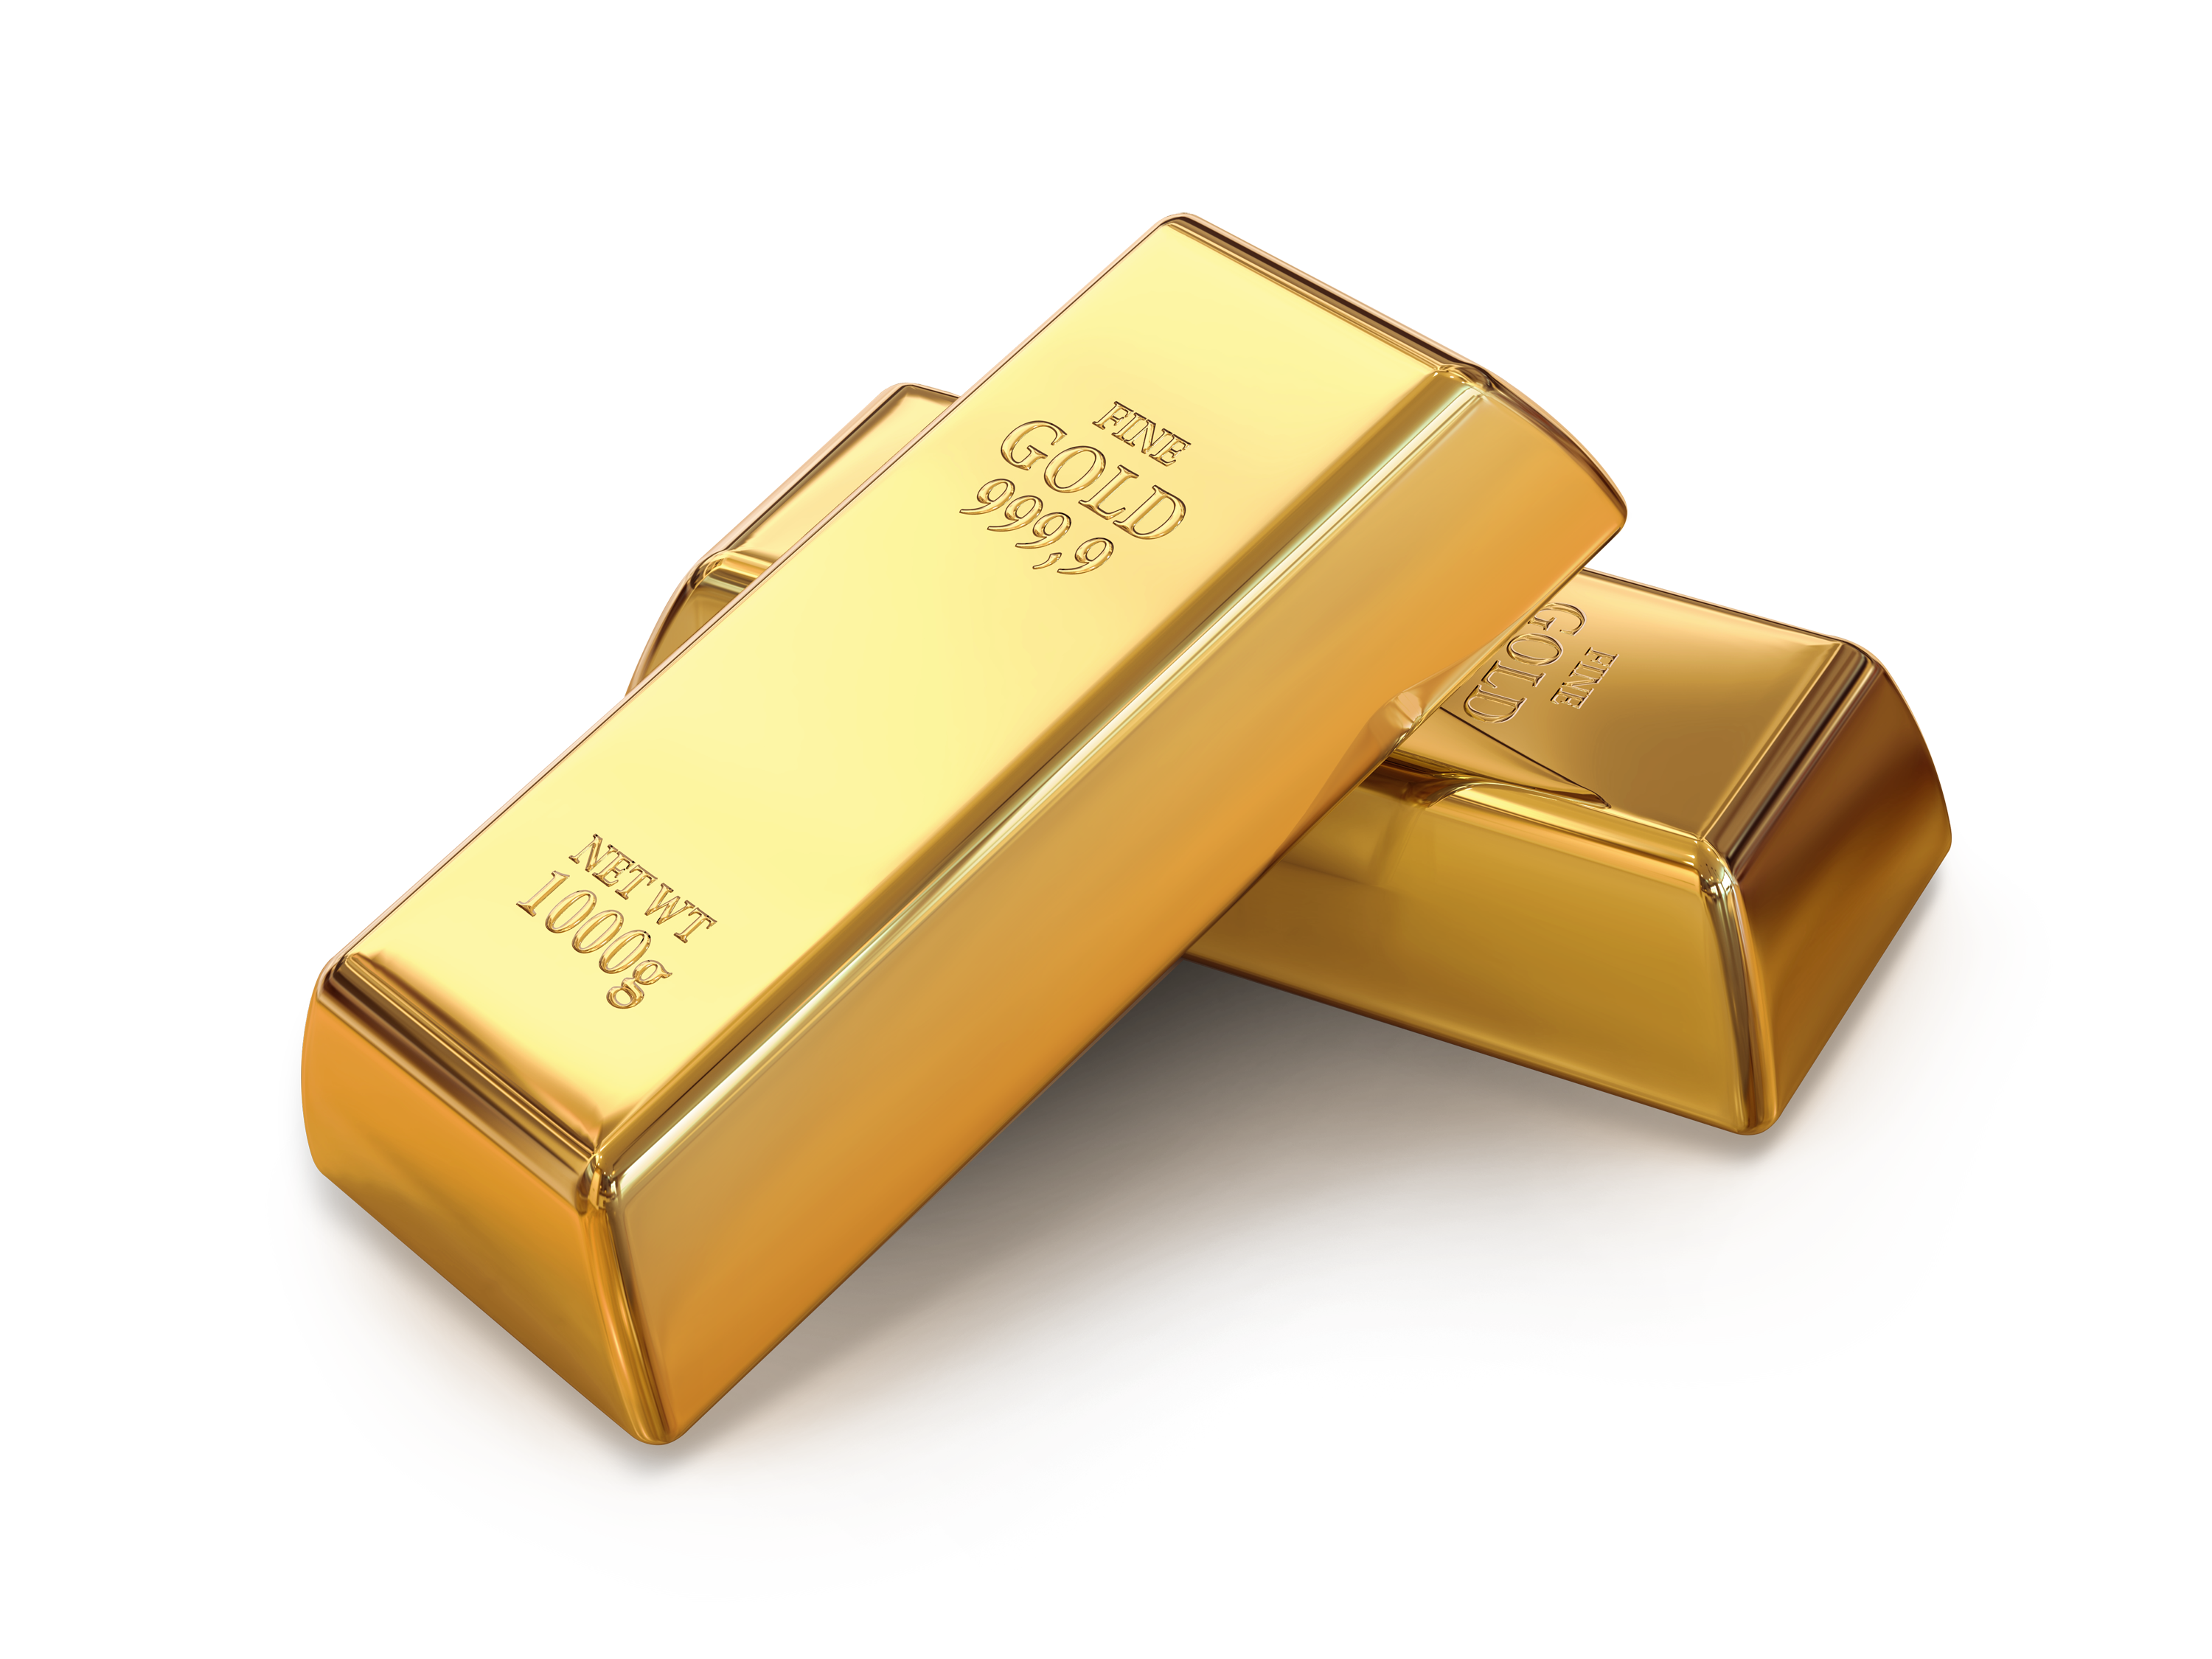 Gold clipart pure gold. Png transparent images all